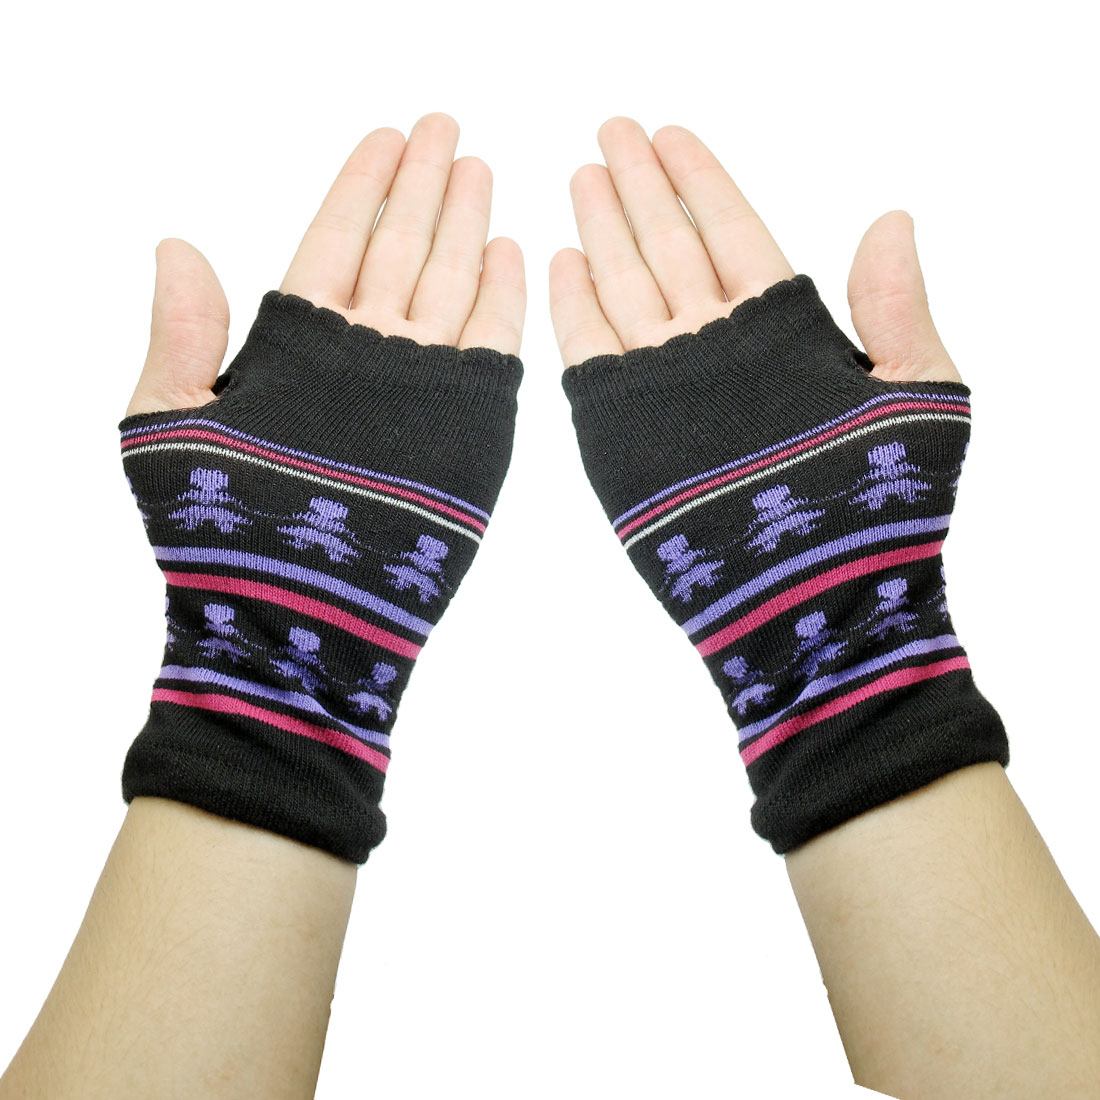 Cartoon Girl Pattern Knitted Fingerless Winter Gloves Black for Ladies